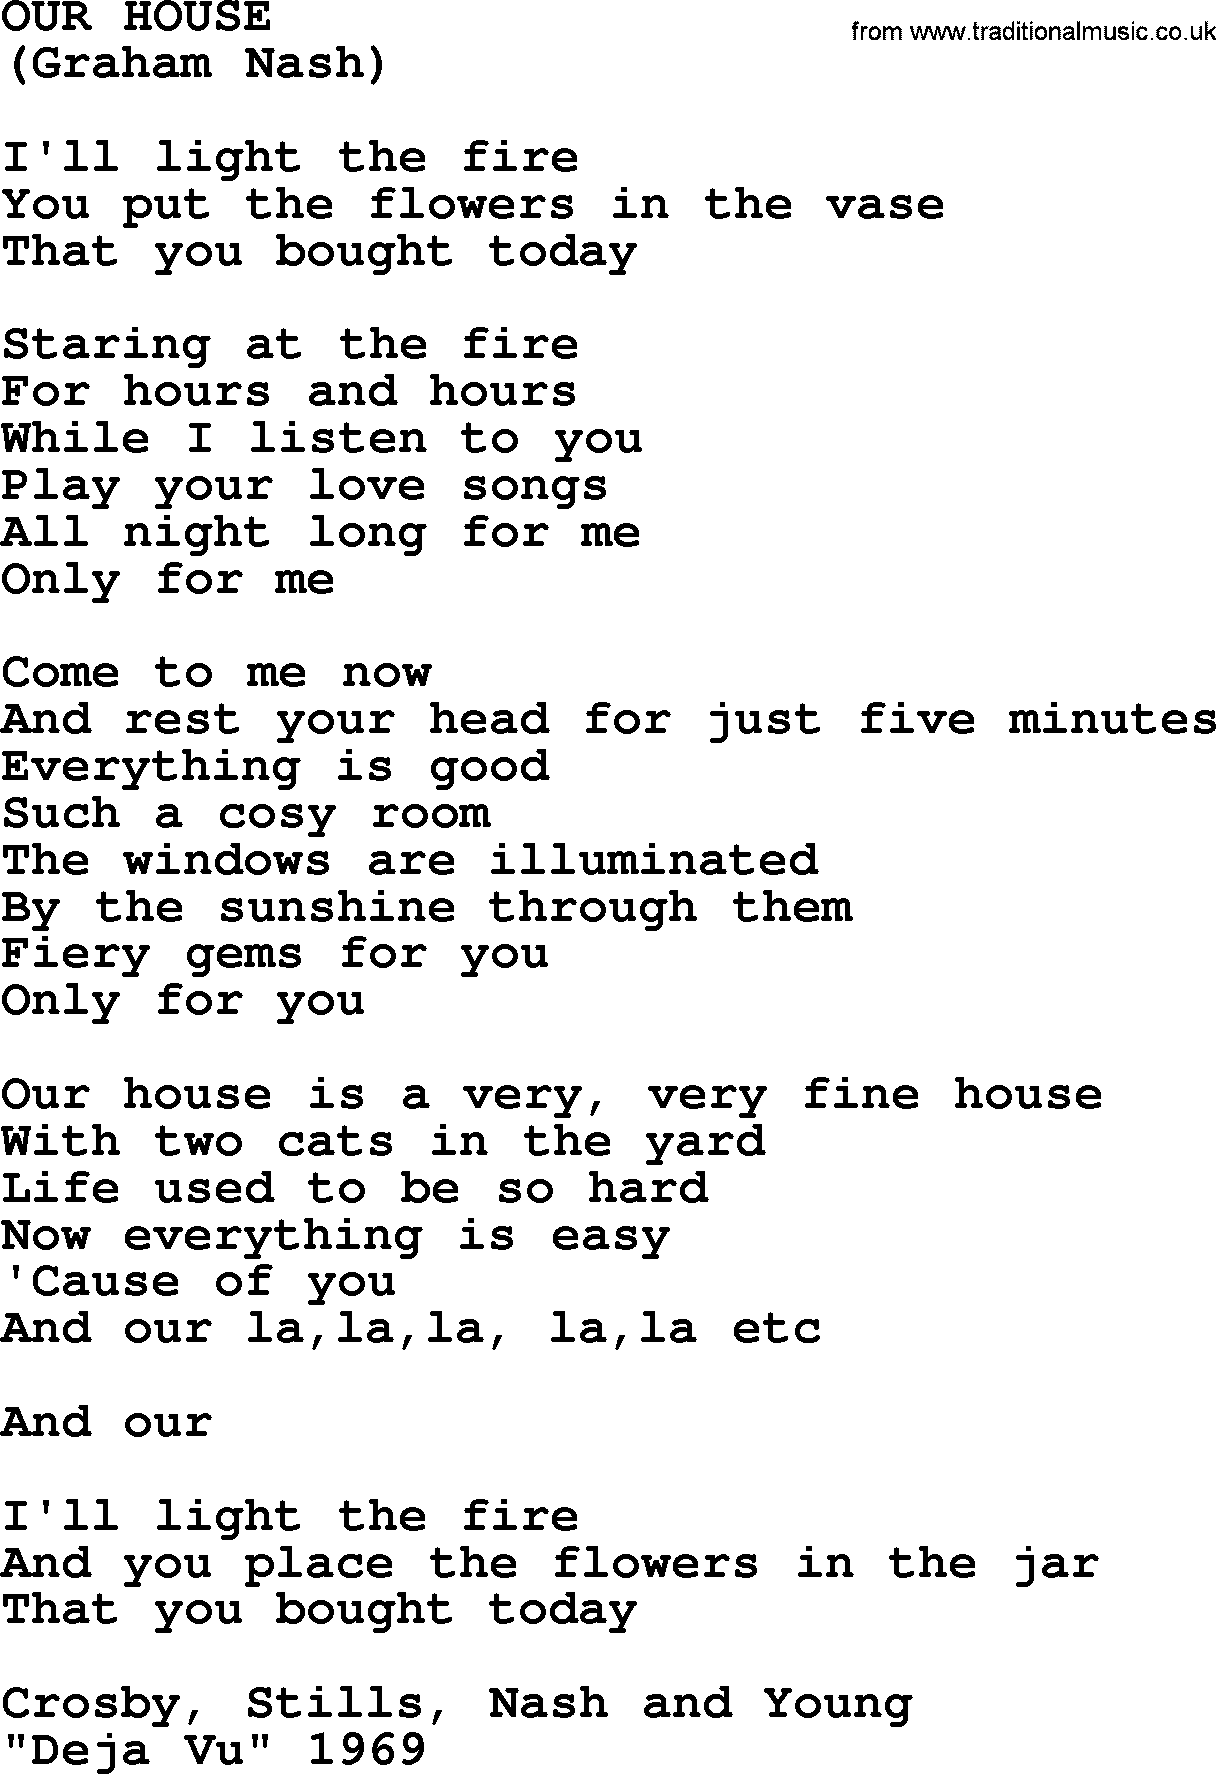 Our House by The Byrds lyrics with pdf